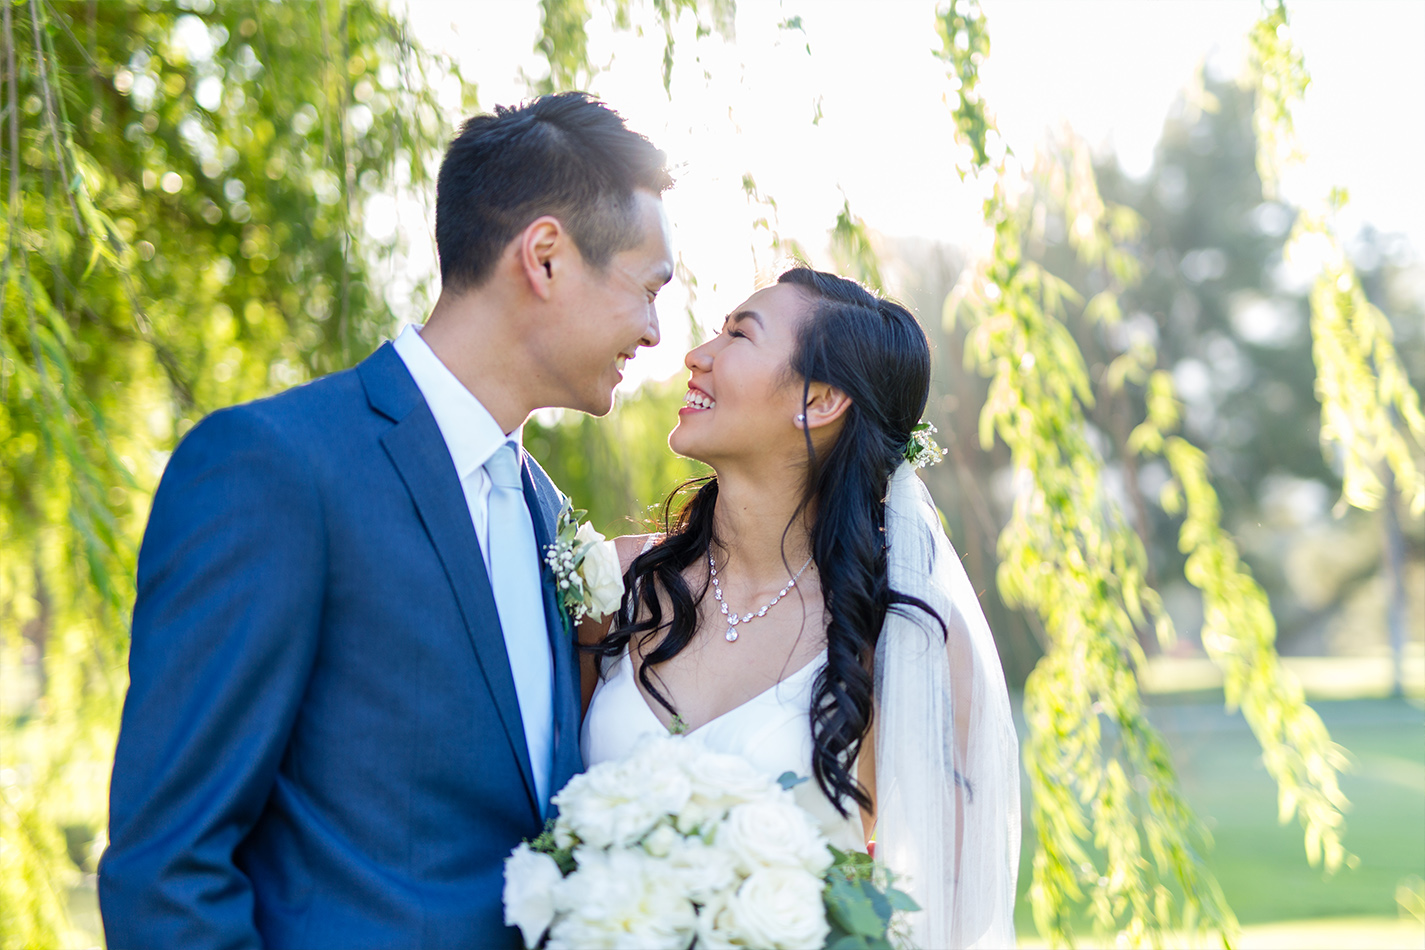 Outdoor wedding oasis - Sierra La Verne - La Verne, California - Claremont Area - Los Angeles County - Wedgewood Weddings